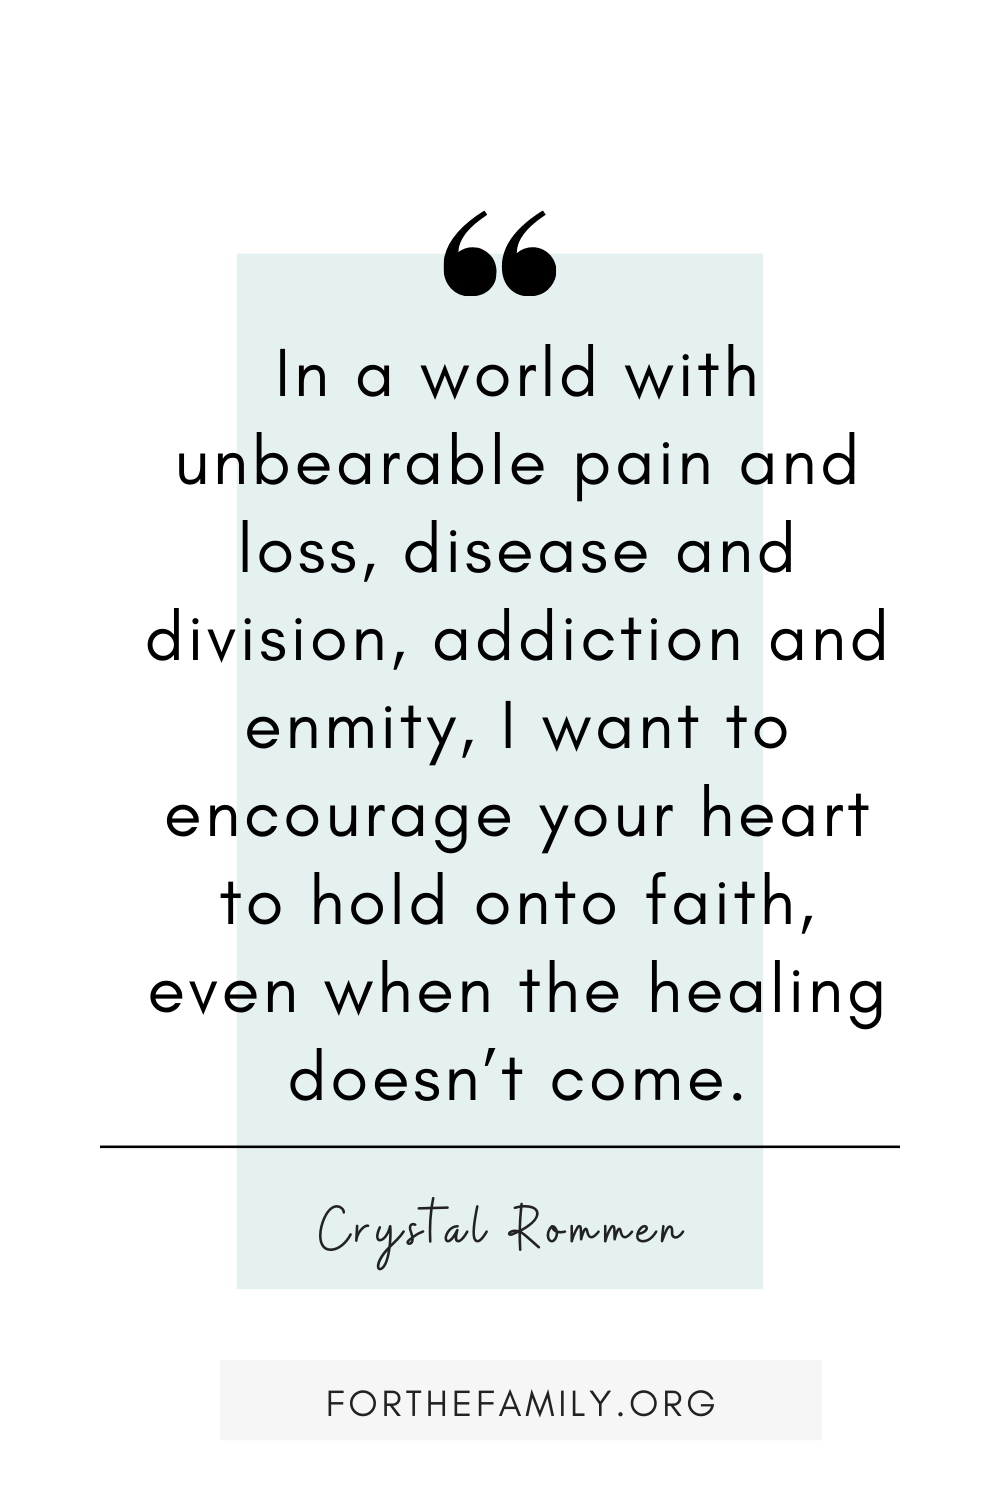 In a world with unbearable pain and loss, disease and division, addiction and enmity, I want to encourage your heart to hold onto faith, even when the healing doesn't come.